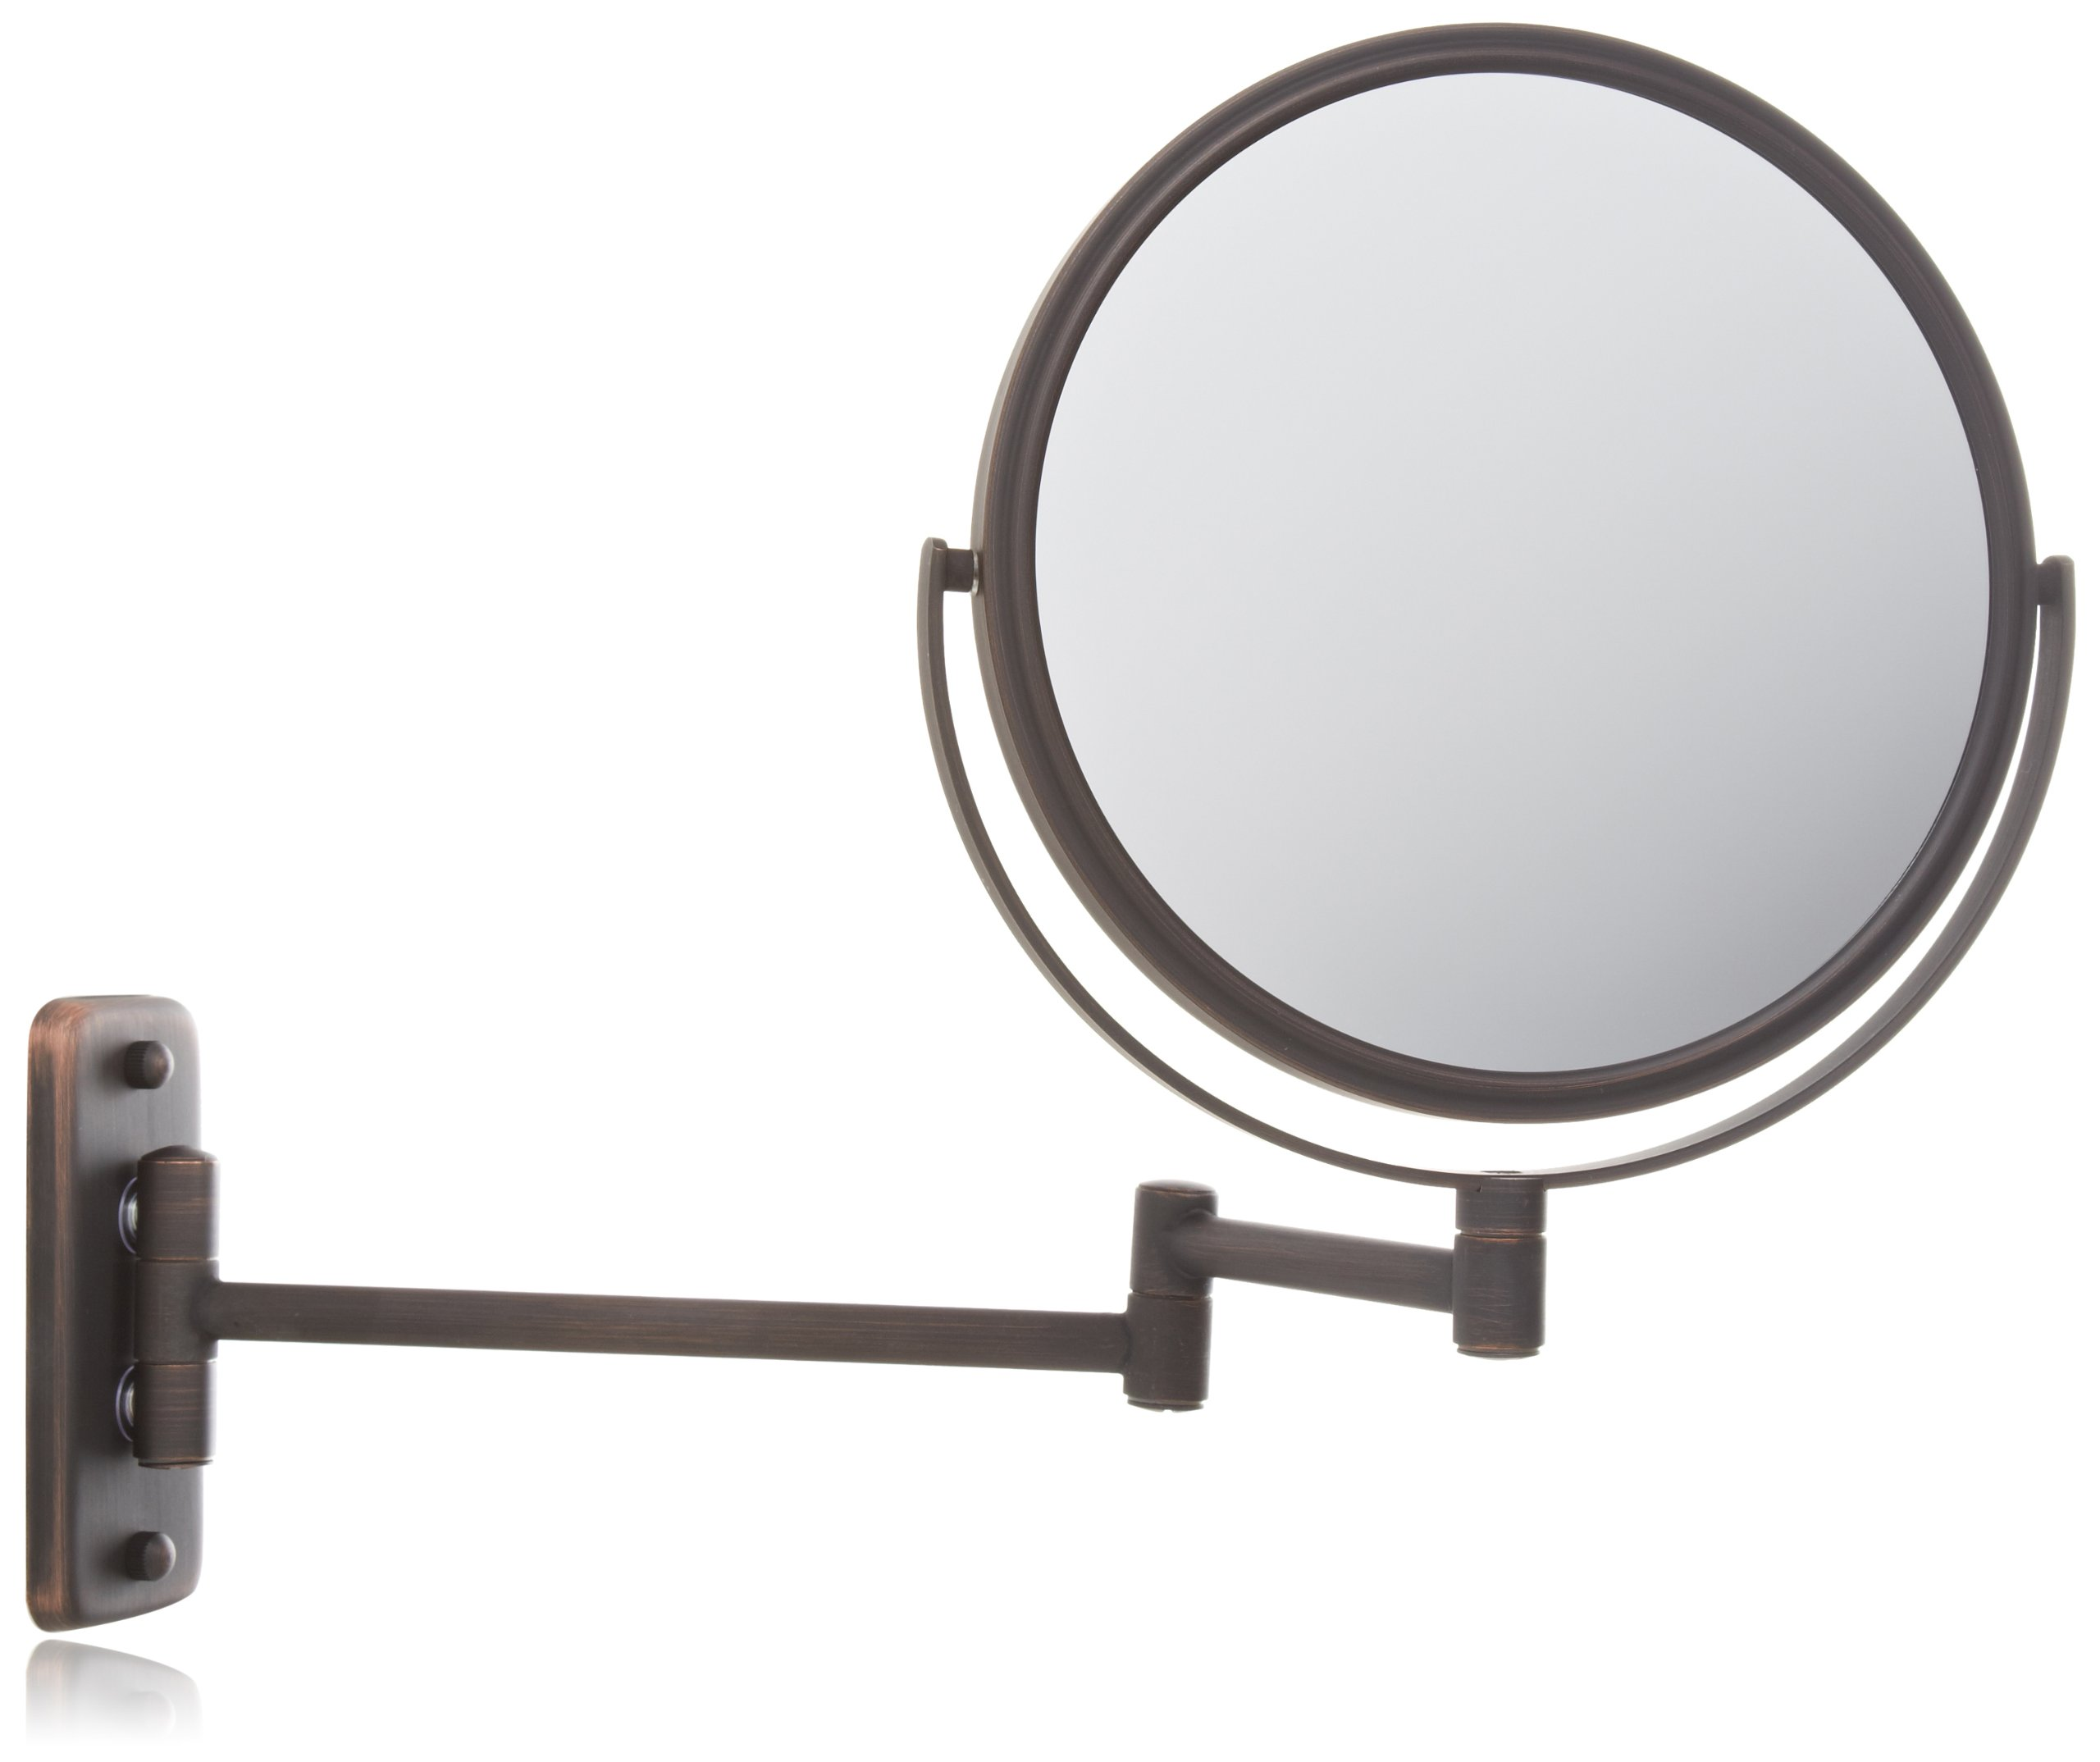 jerdon jp7506bz 8 inch wall mount makeup mirror with 5x magnification bronze ebay. Black Bedroom Furniture Sets. Home Design Ideas